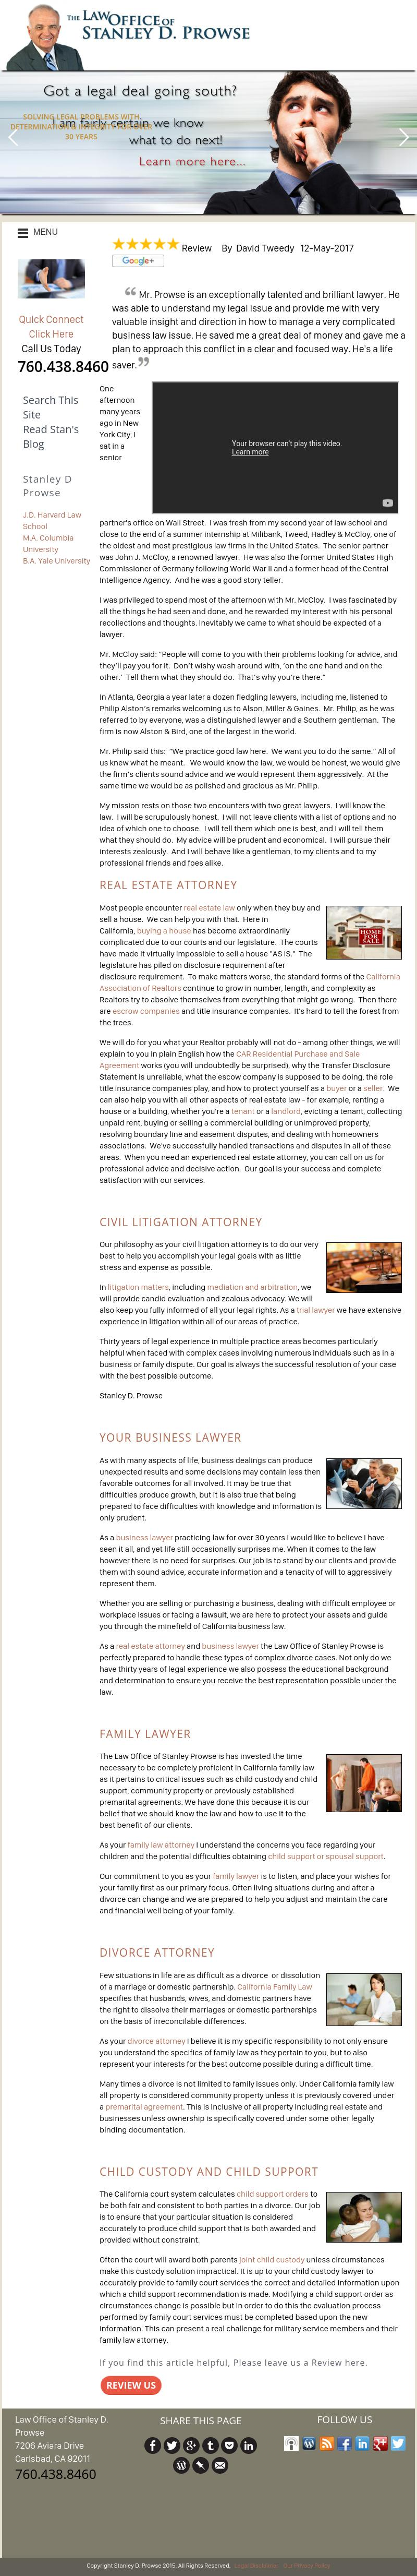 The Law Office of Stanley D. Prowse - Carlsbad CA Lawyers